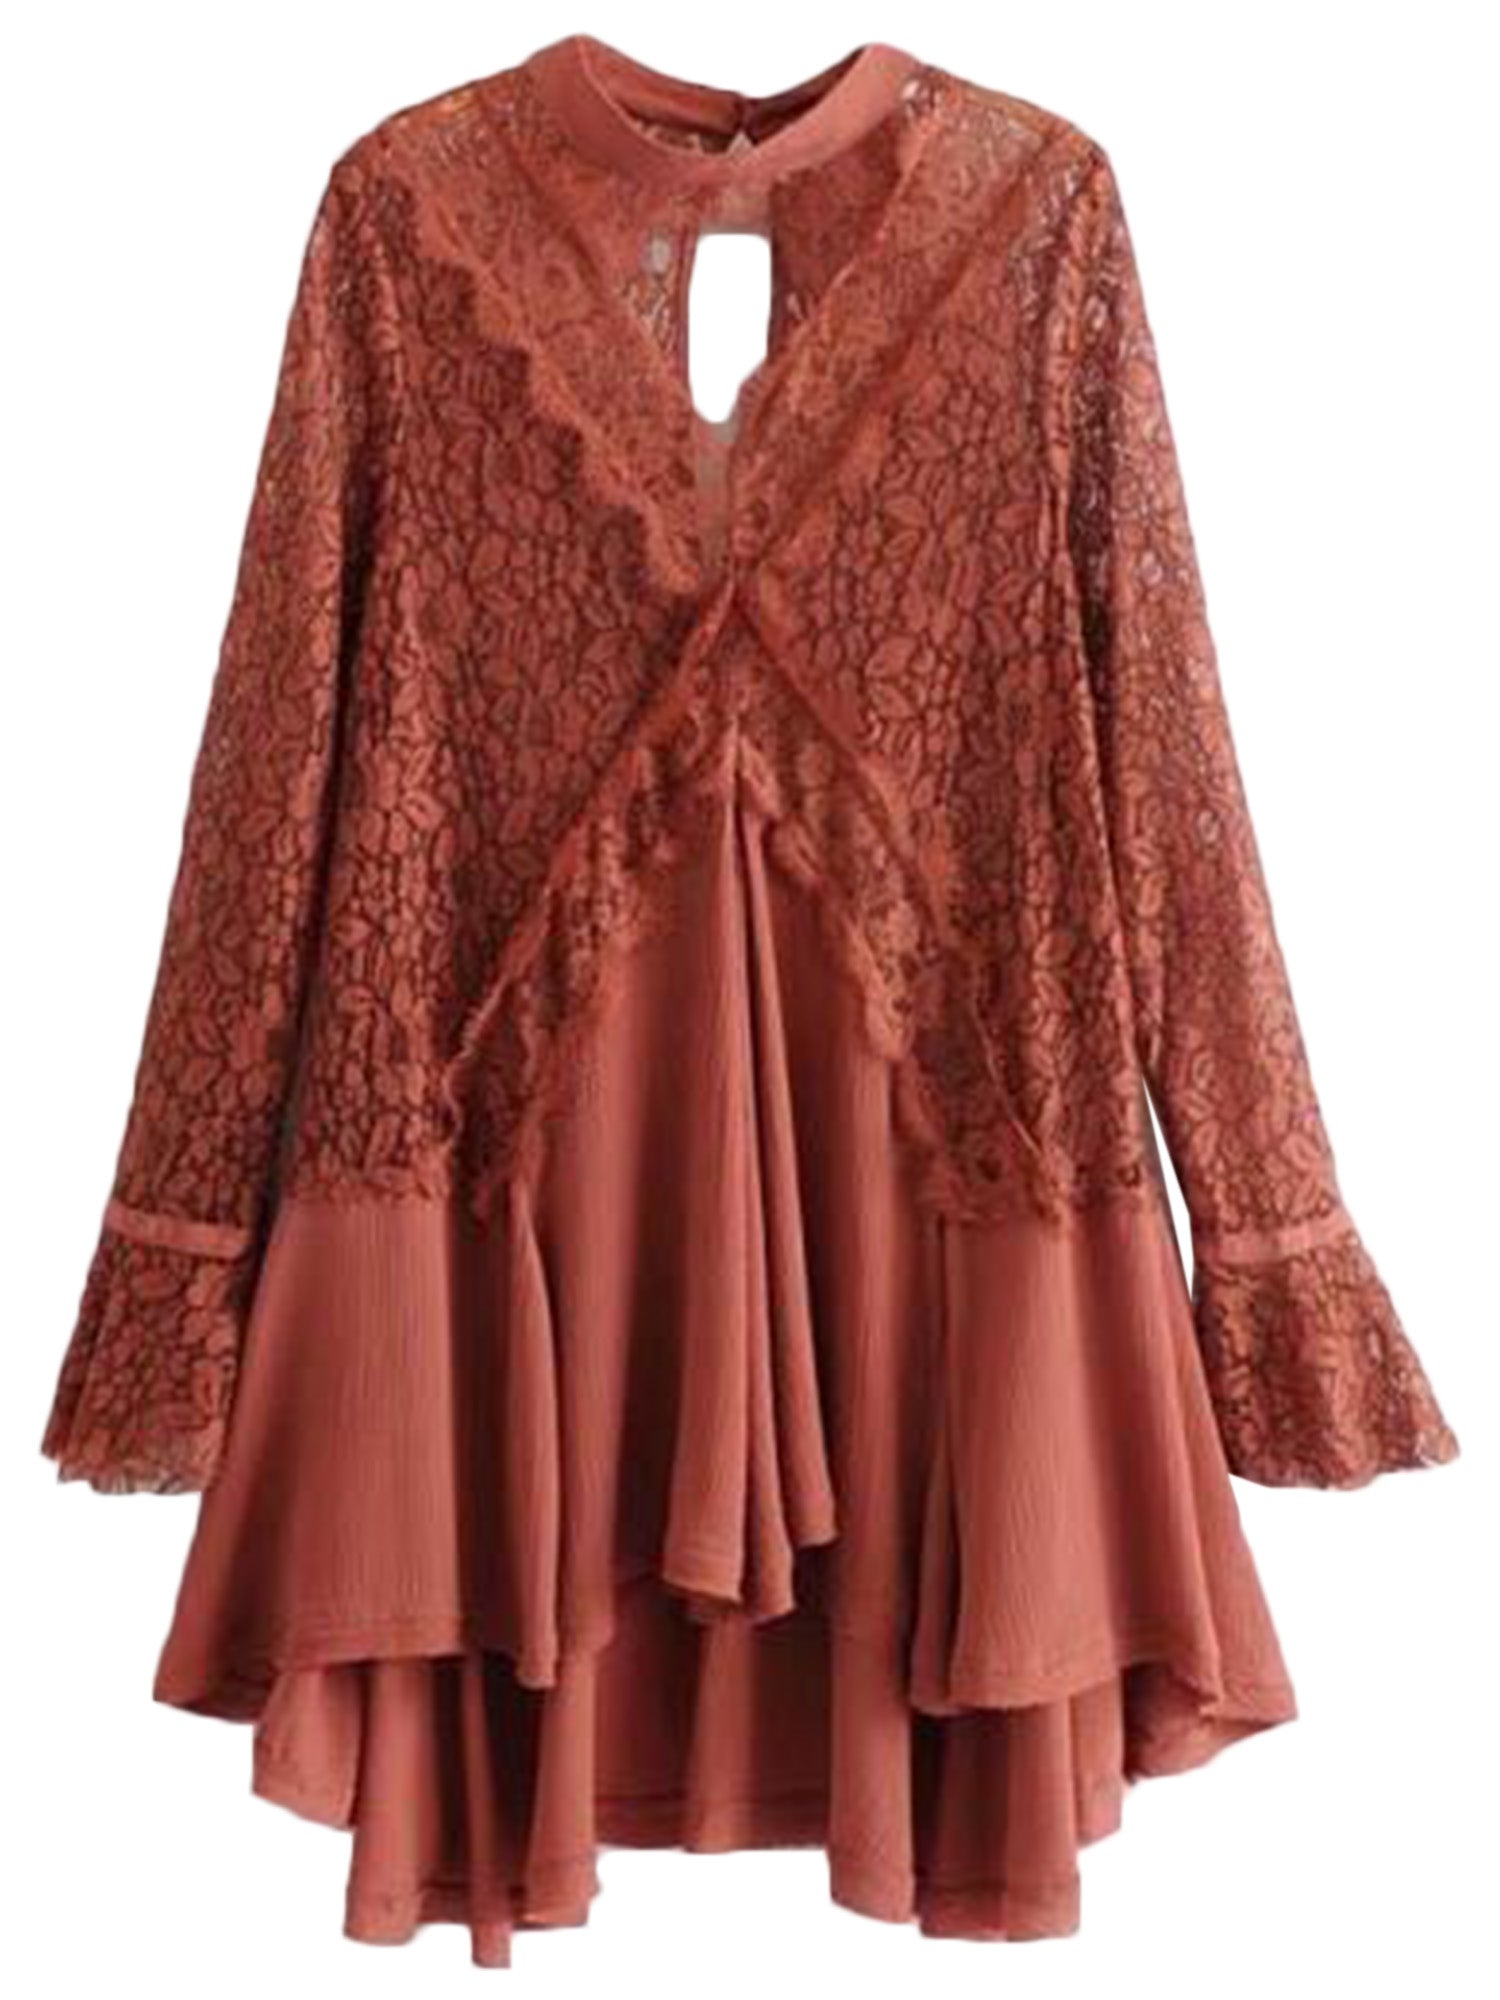 'Merle' Frilly Lace Crochet Tunic (3 Colors)